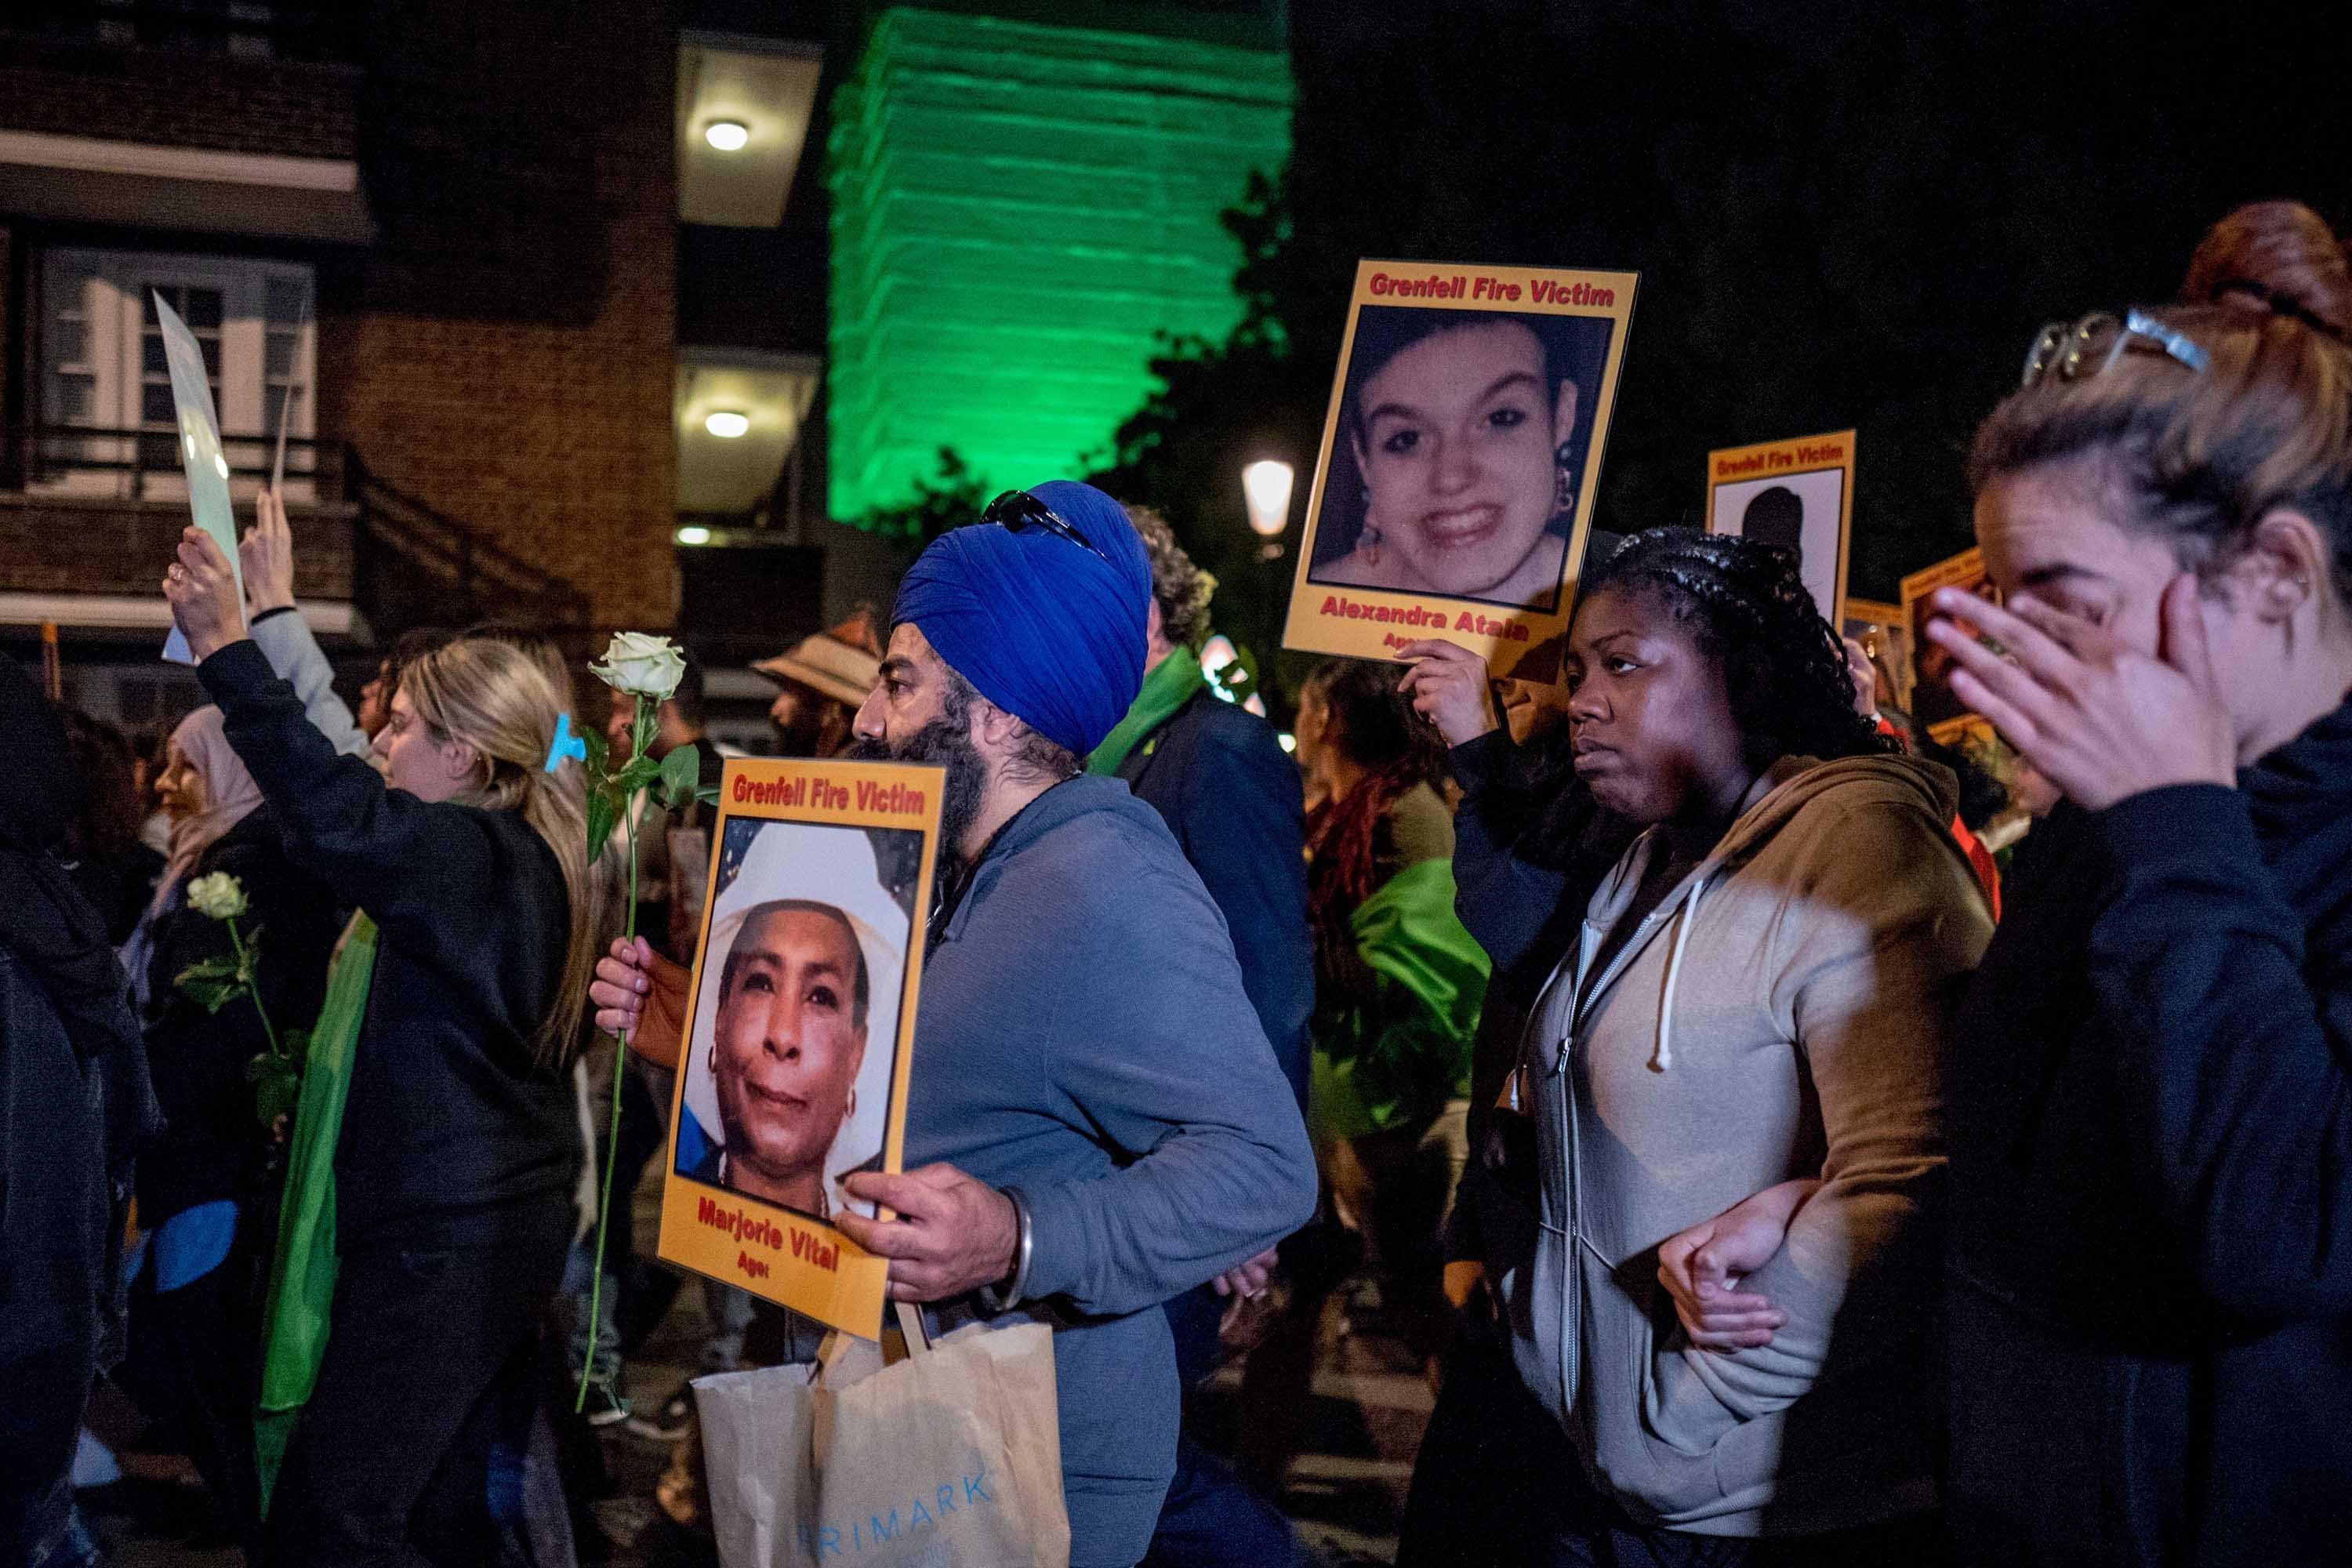 Families and friends who lost loved ones in the fire hold portraits of victims as they march to the illuminated Grenfell Tower in the early hours of Thursday.